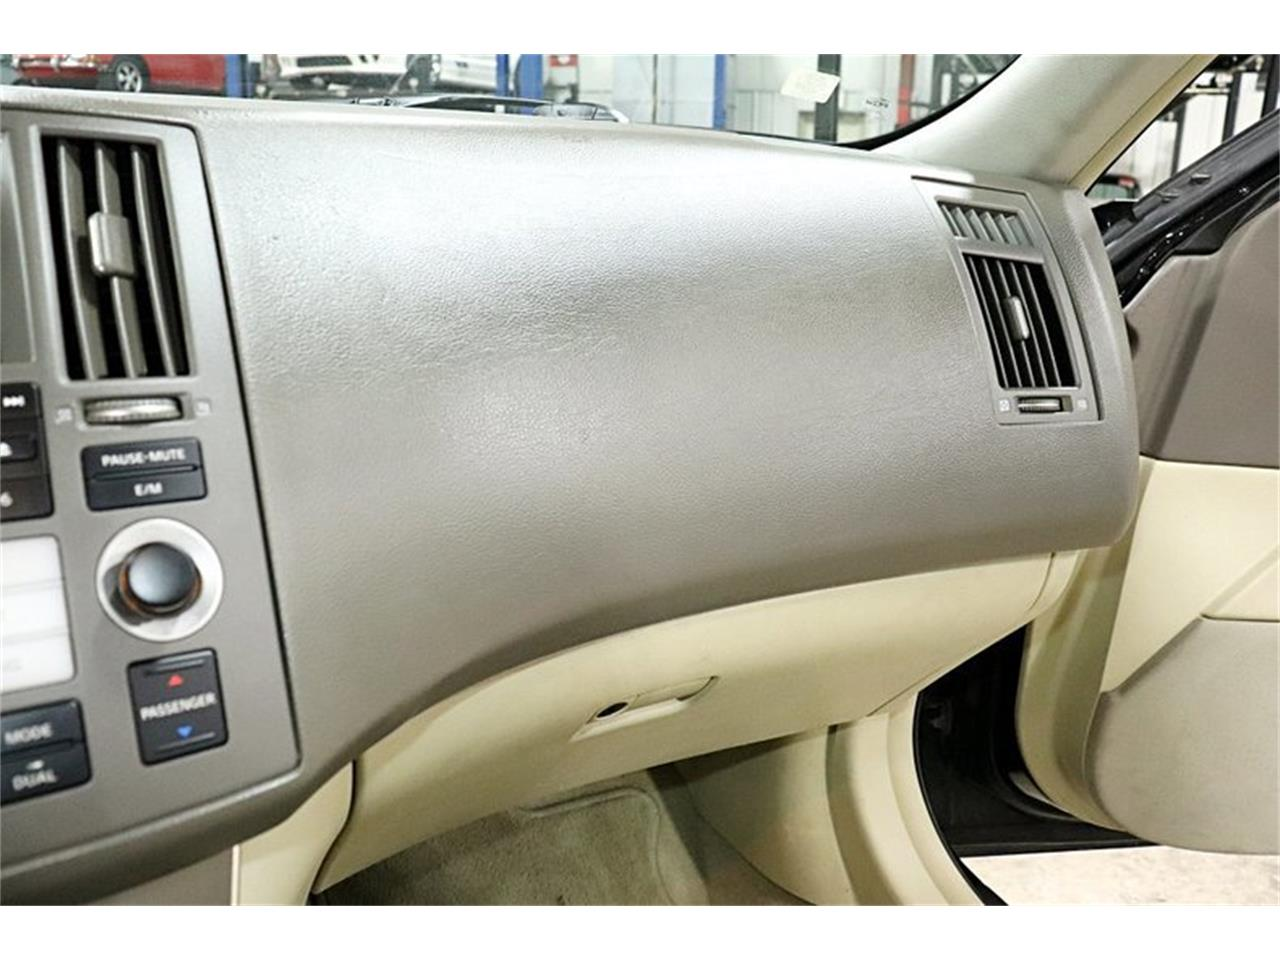 Large Picture of 2008 Infiniti FX35 located in Michigan - $7,900.00 Offered by GR Auto Gallery - PY0U